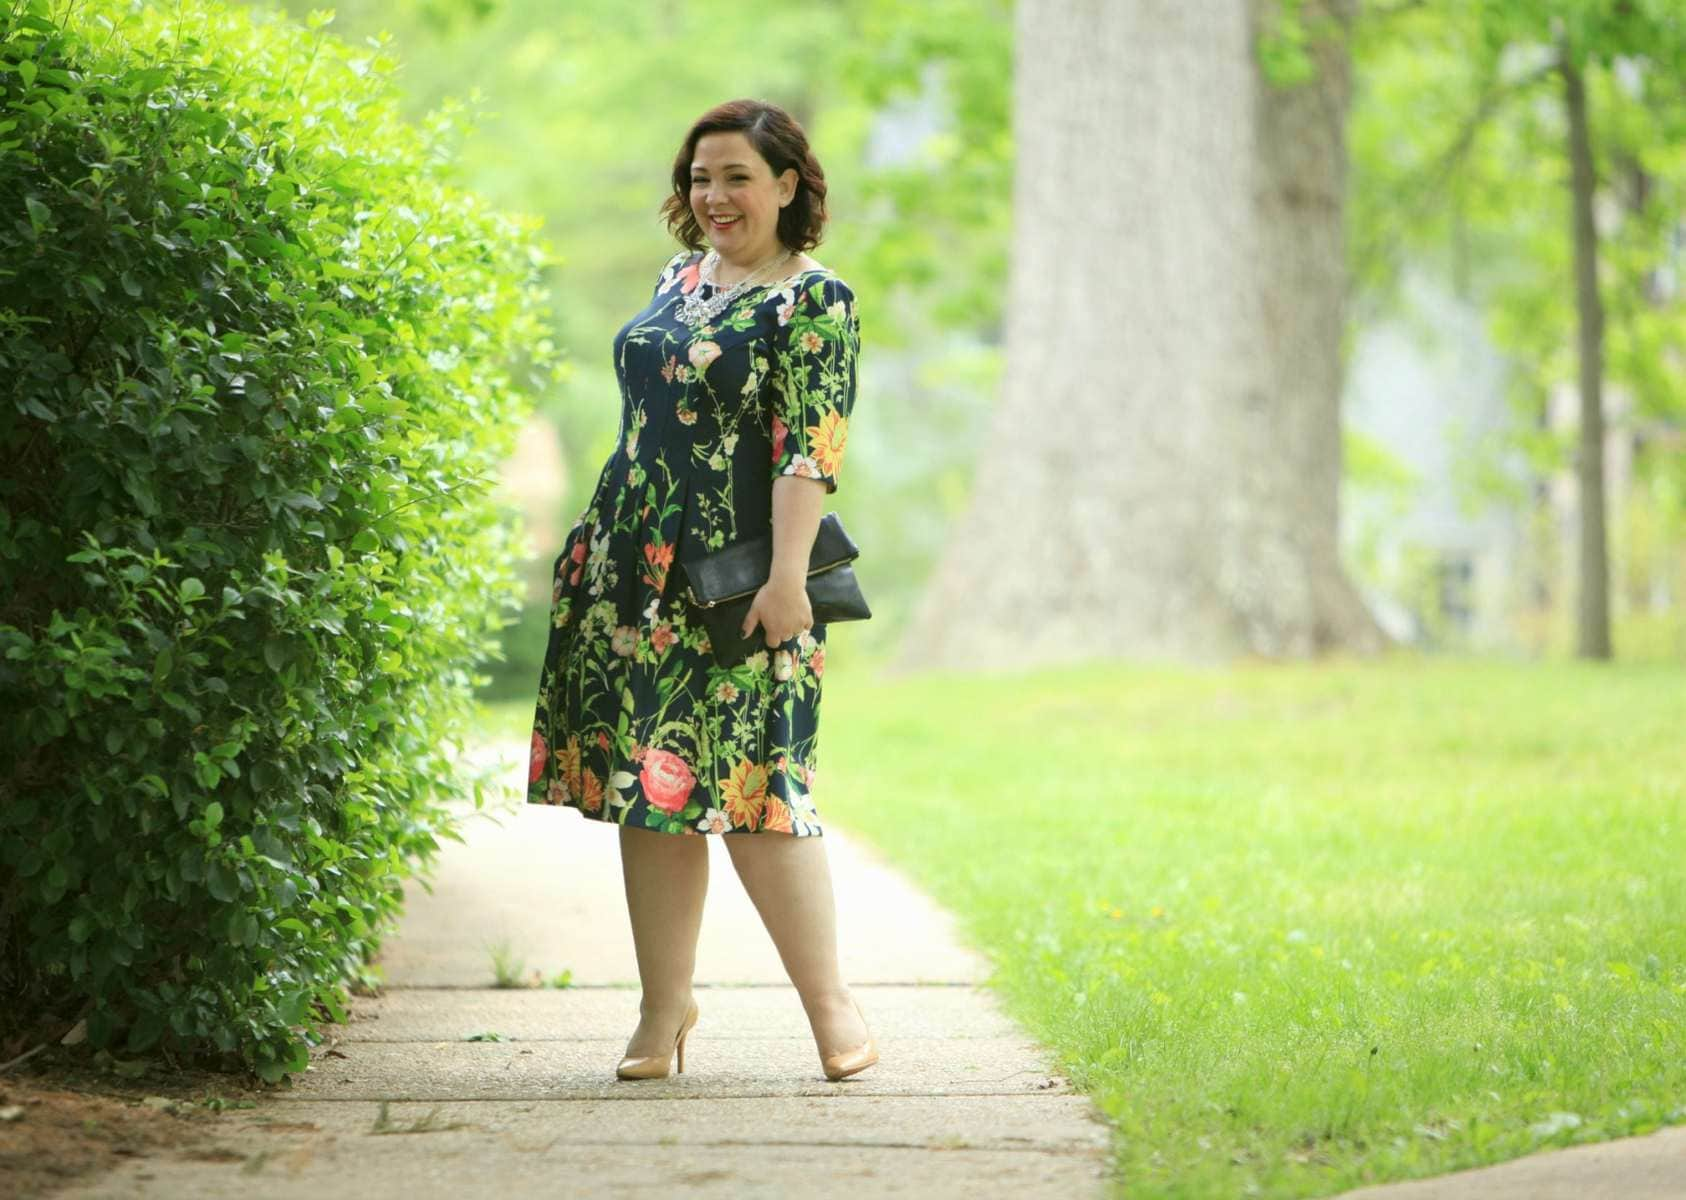 Wardrobe Oxygen in a Gabby Skye floral fit and flare dress via Gwynnie Bee with a Baublebar necklace and Nine West pumps